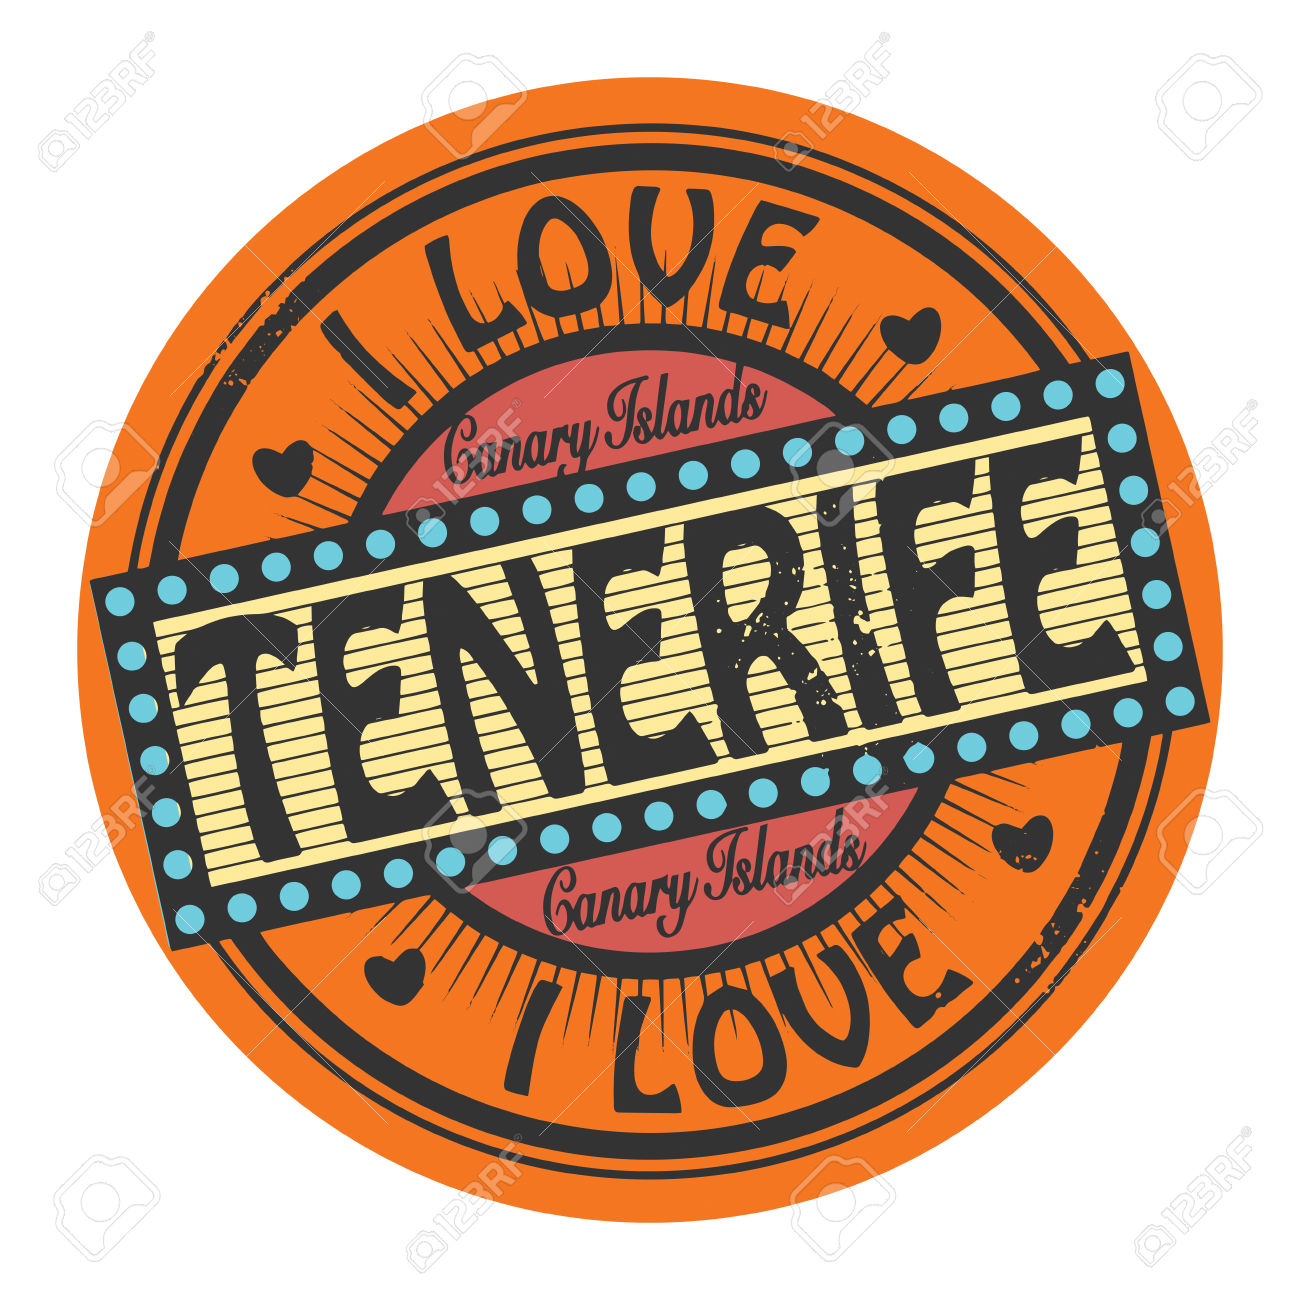 Grunge Color Stamp Or Label With Text I Love Tenerife Inside.